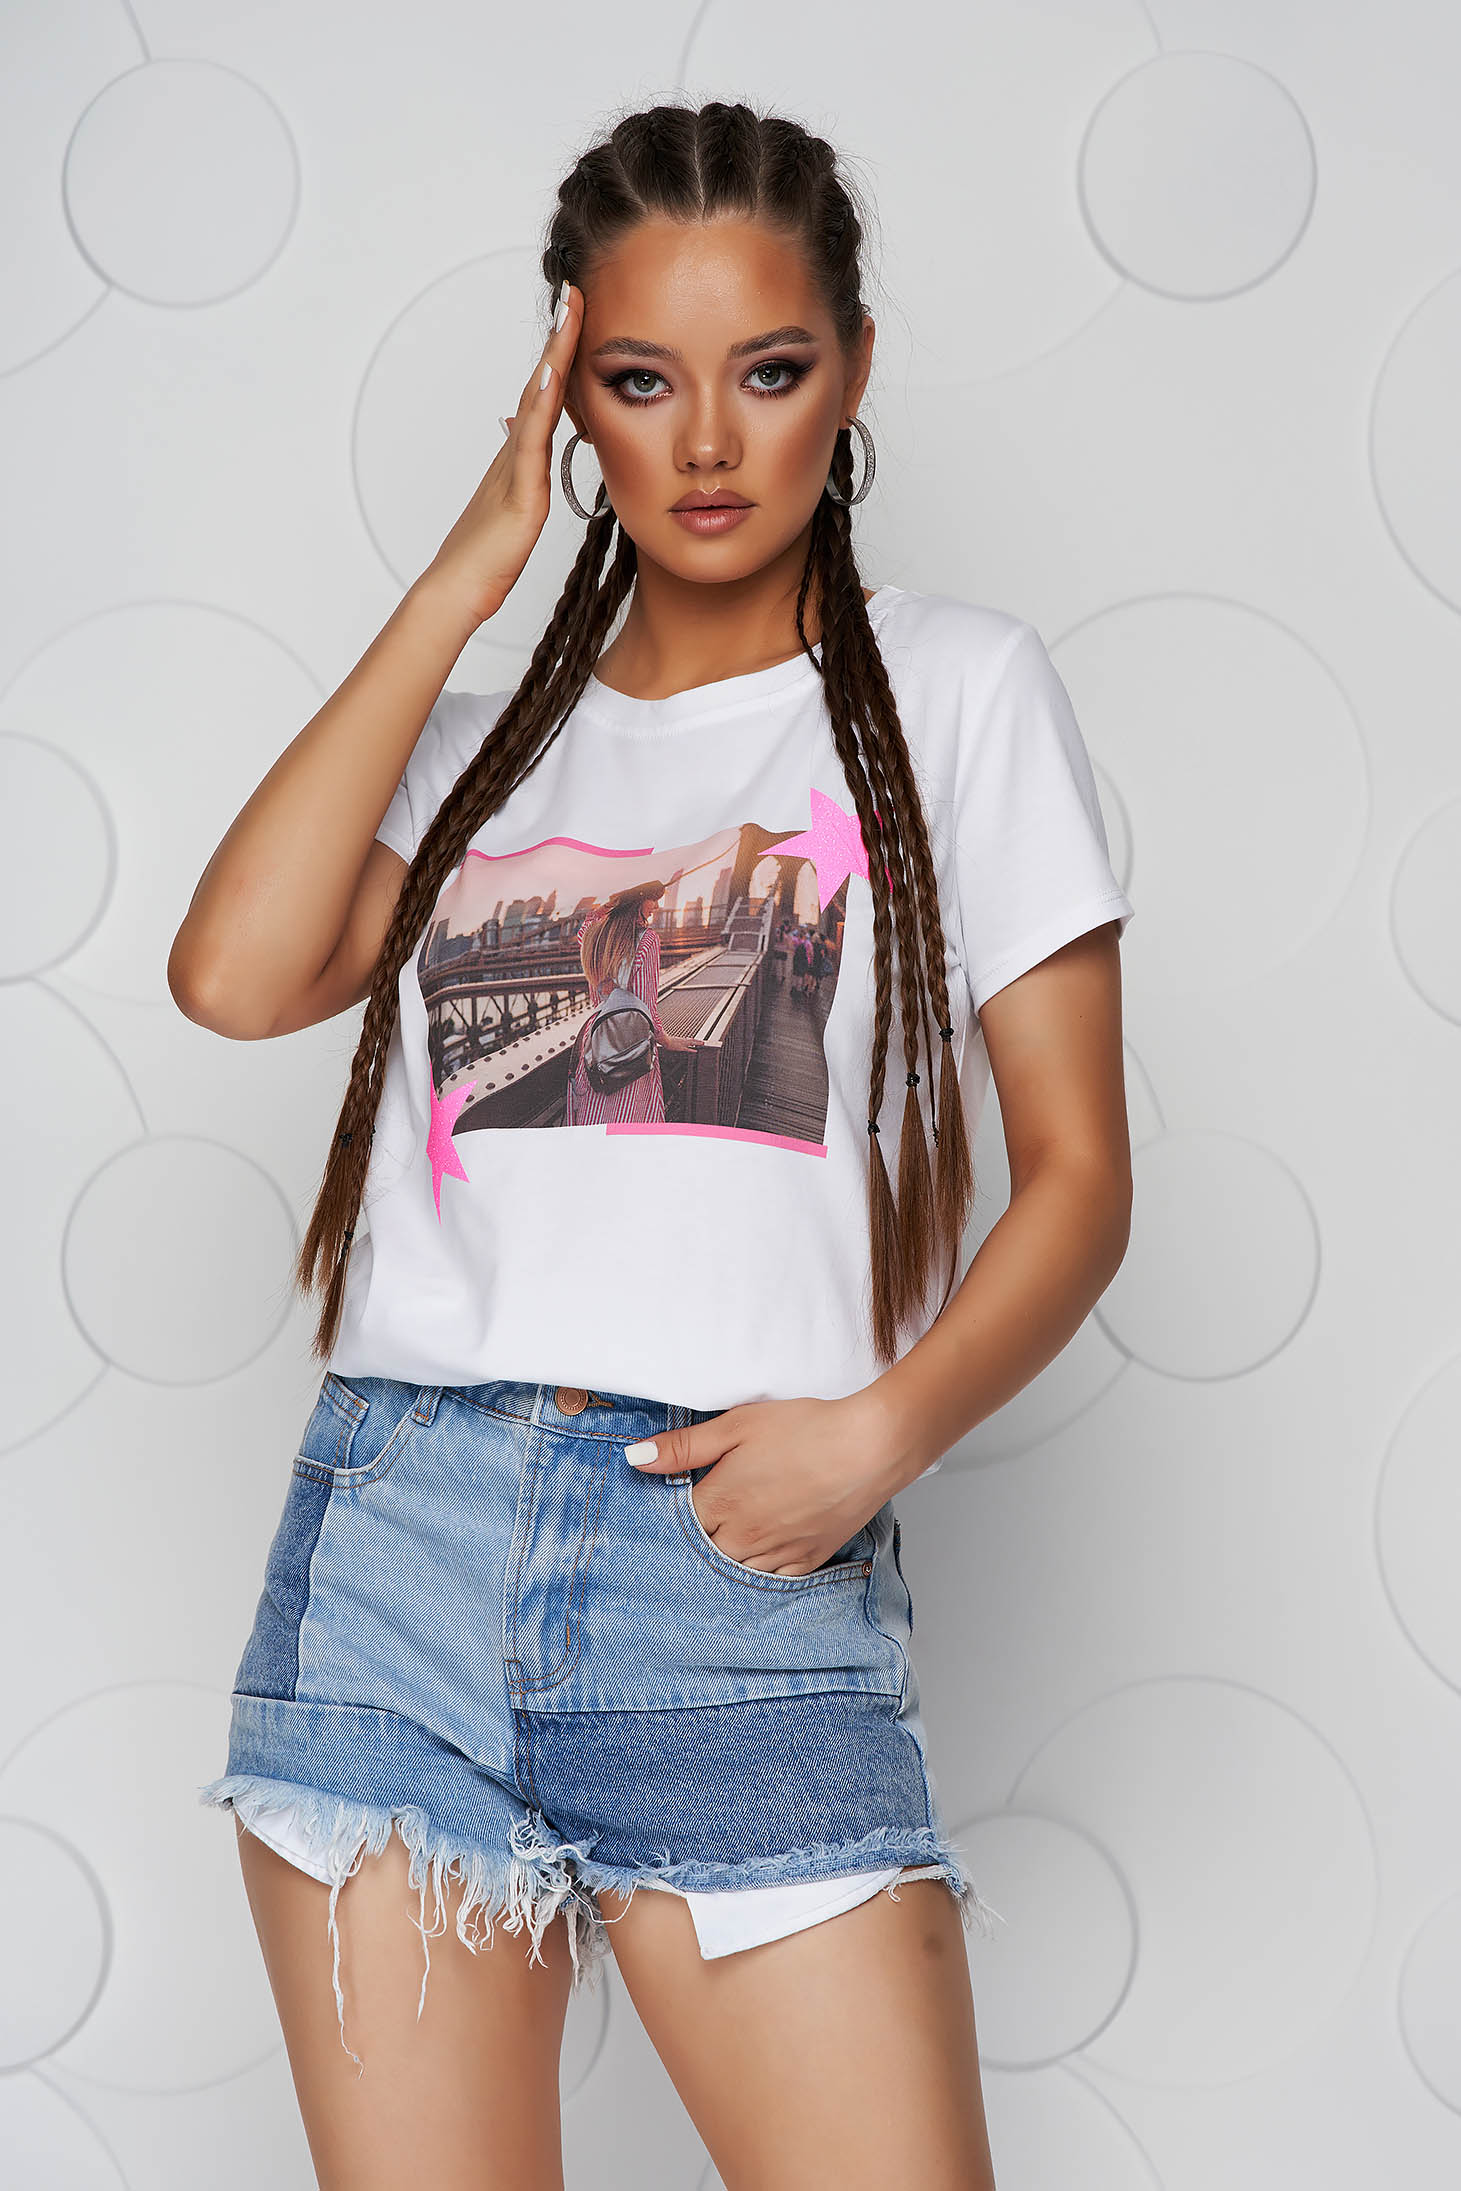 Pink t-shirt cotton loose fit with rounded cleavage with glitter details